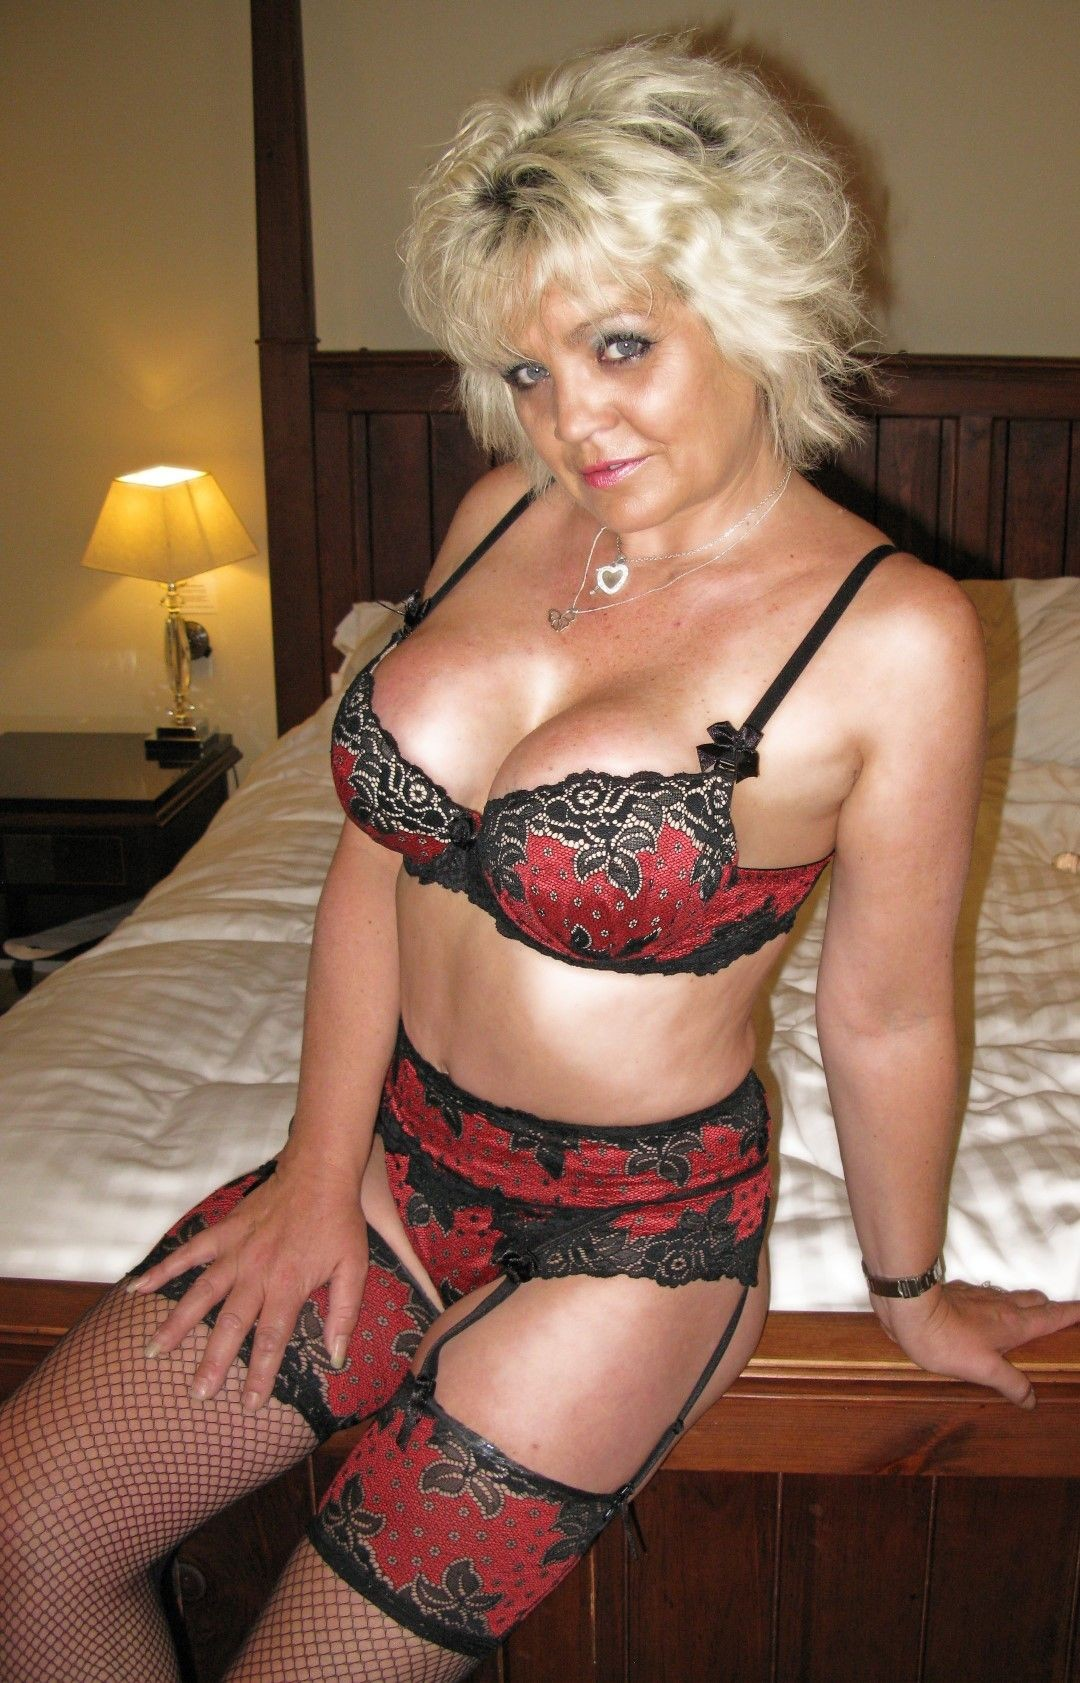 milf escort milf dating